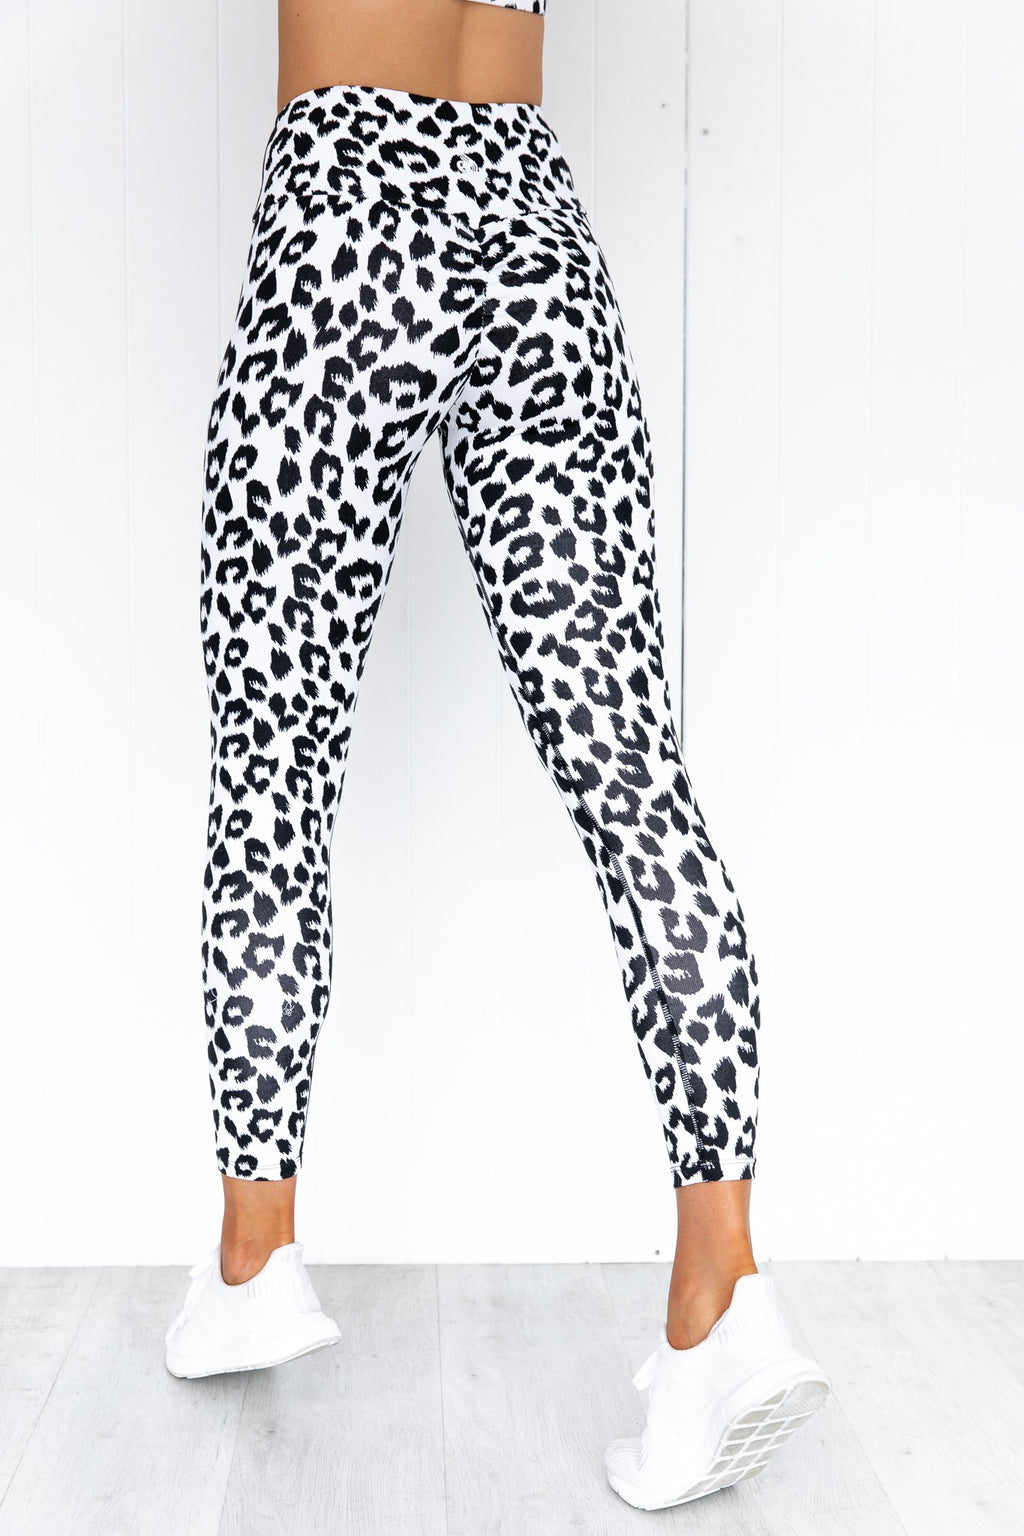 Instincts Scrunch Bum Leggings - Snow Leopard